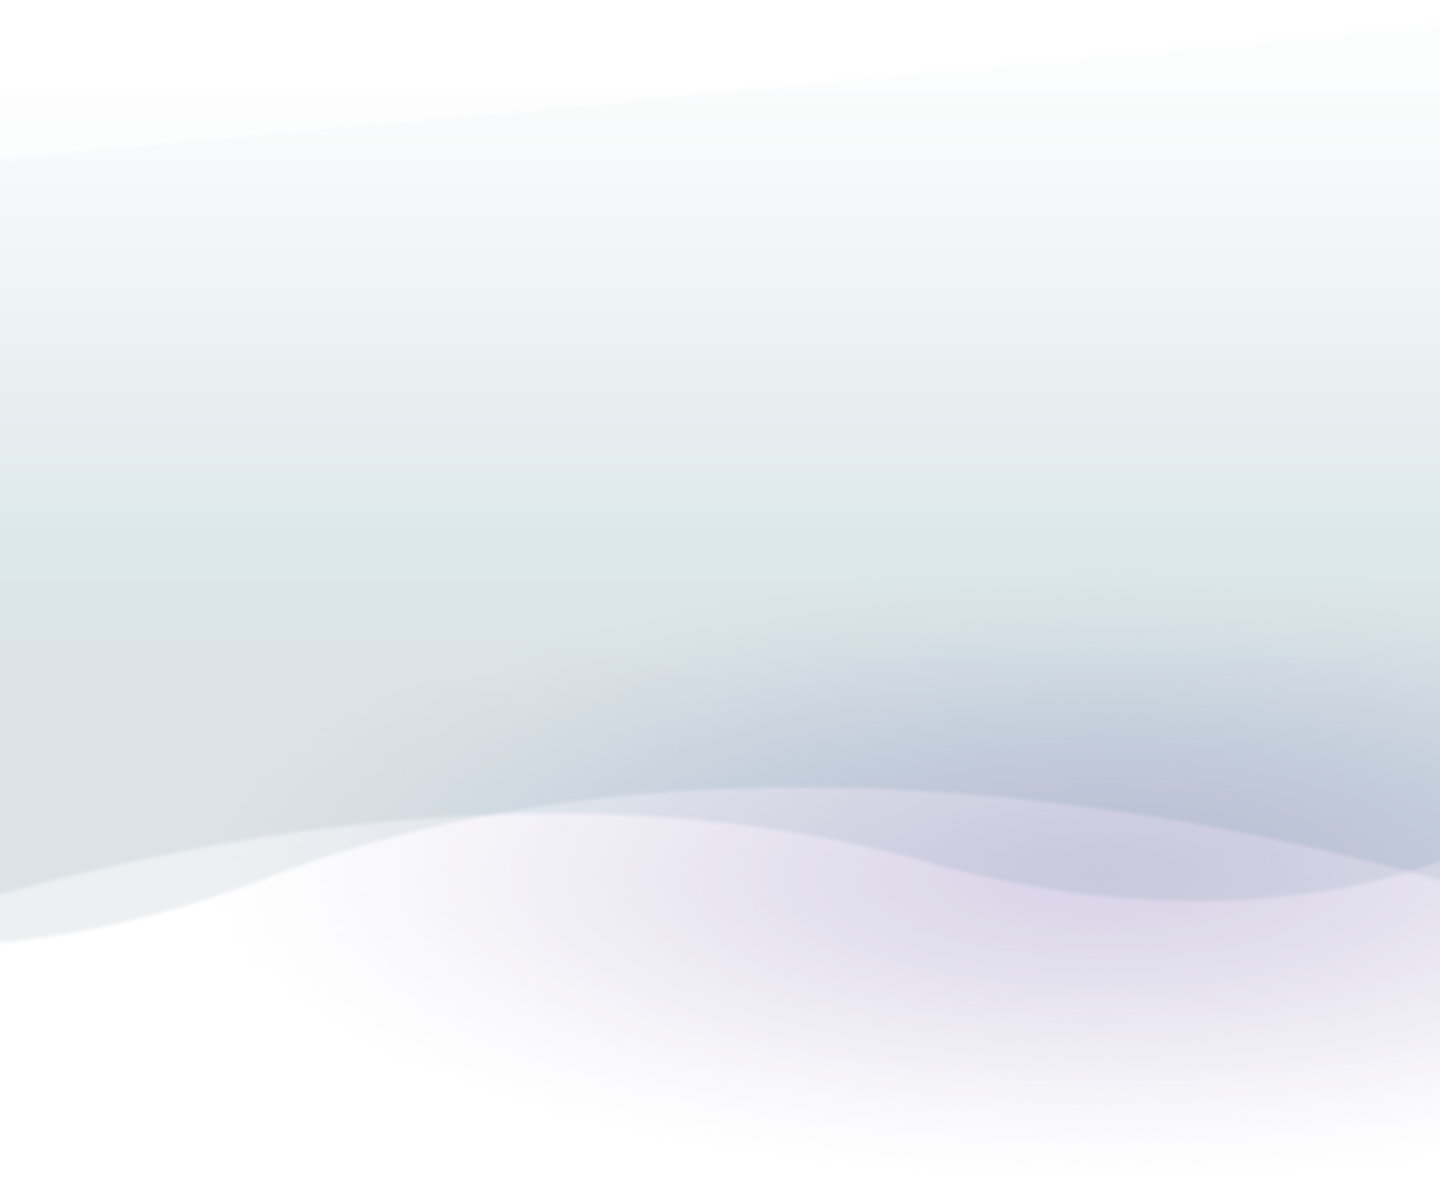 background-waves.png